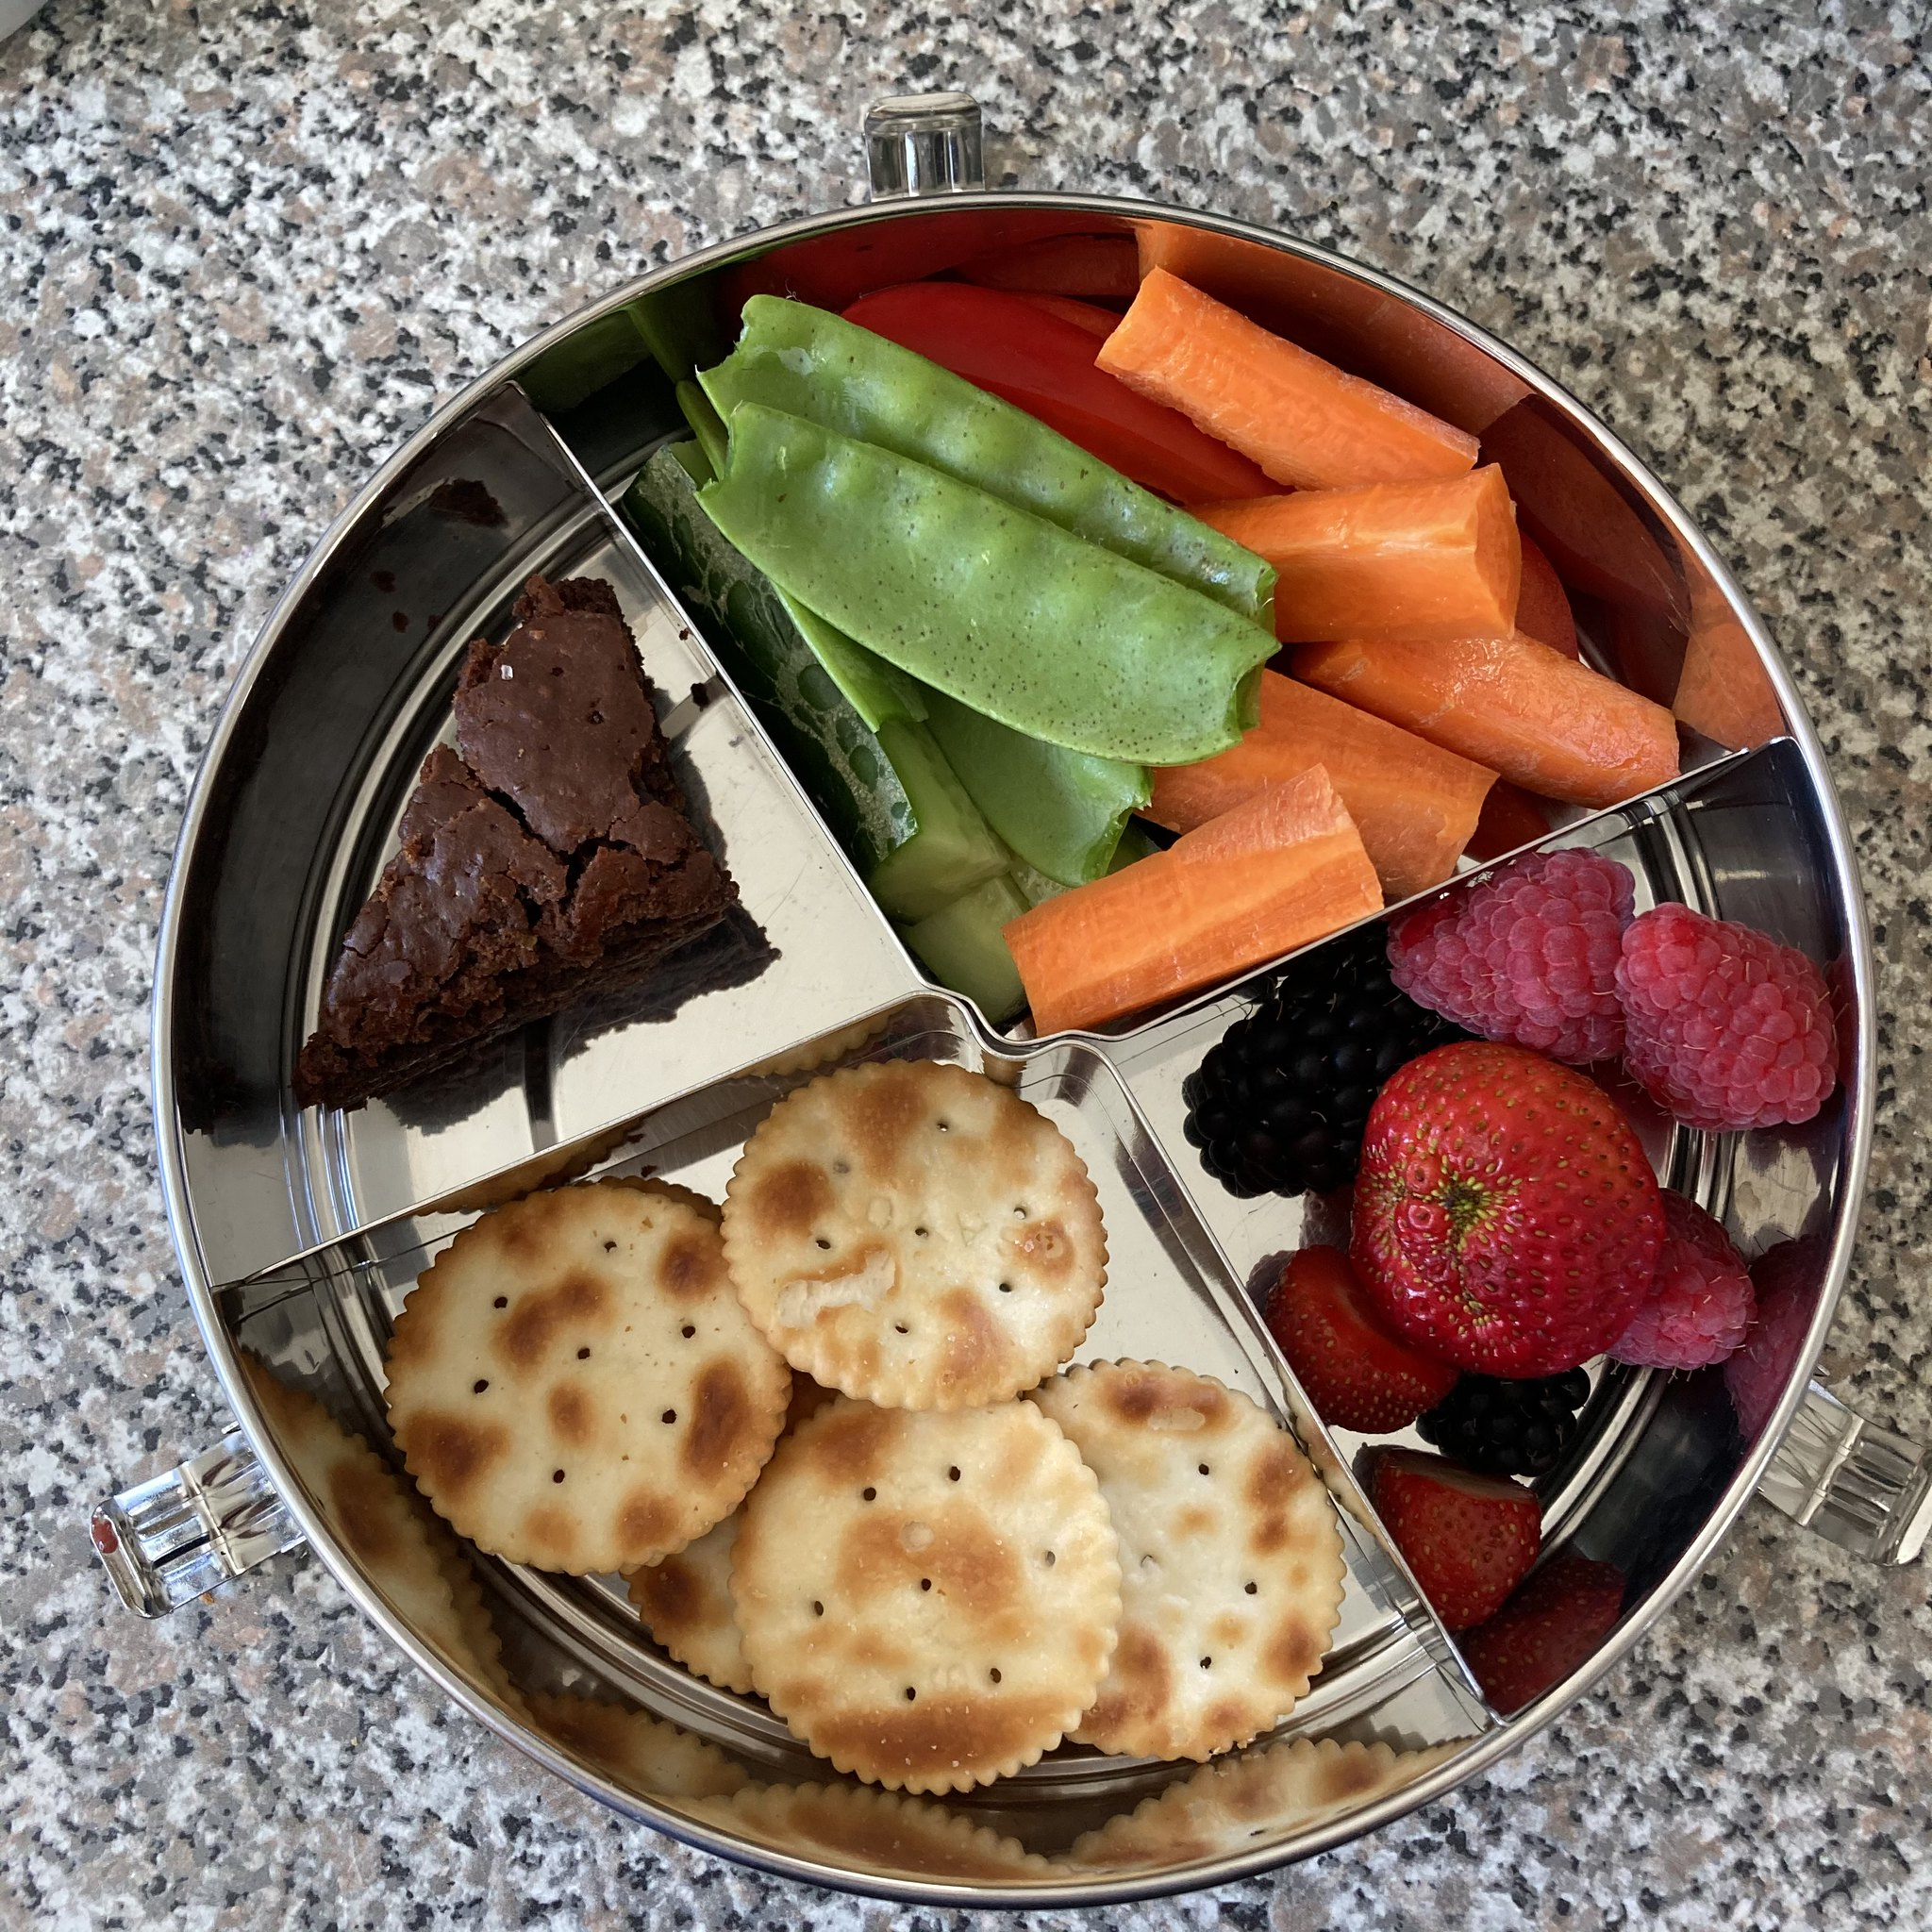 a round stainless steel lunchbox, packed with round crackers, a triangular piece of chocolate brownie, sticks of cucumber, capsicum, carrot and snowpeas and raspberries, blackberries and strawberries